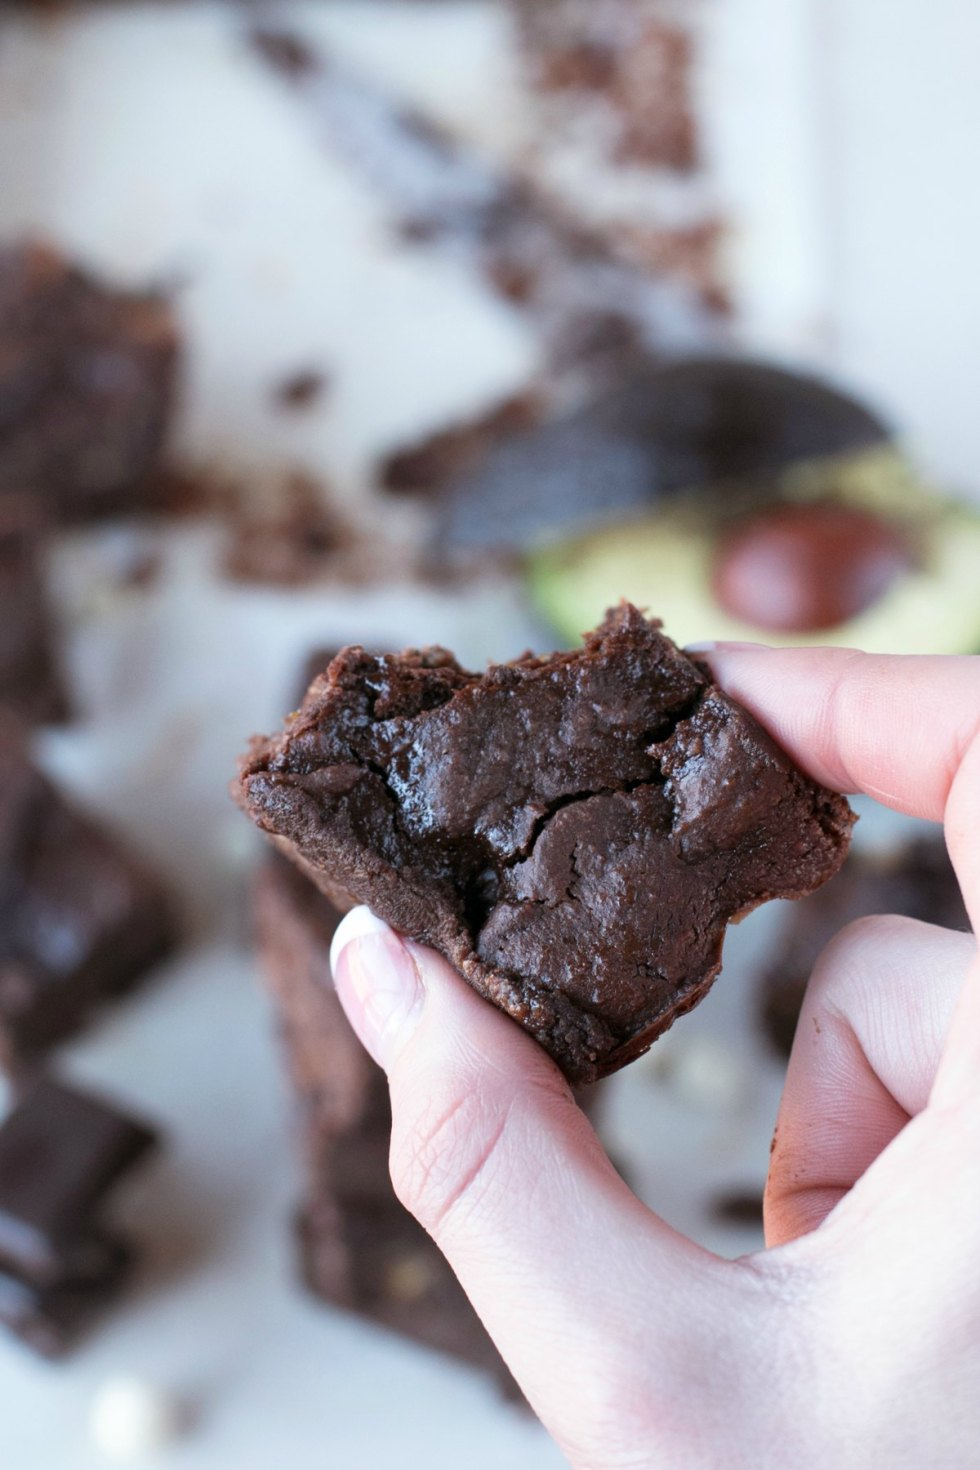 A hand holding a single avocado brownie with a bite out above other brownies in background